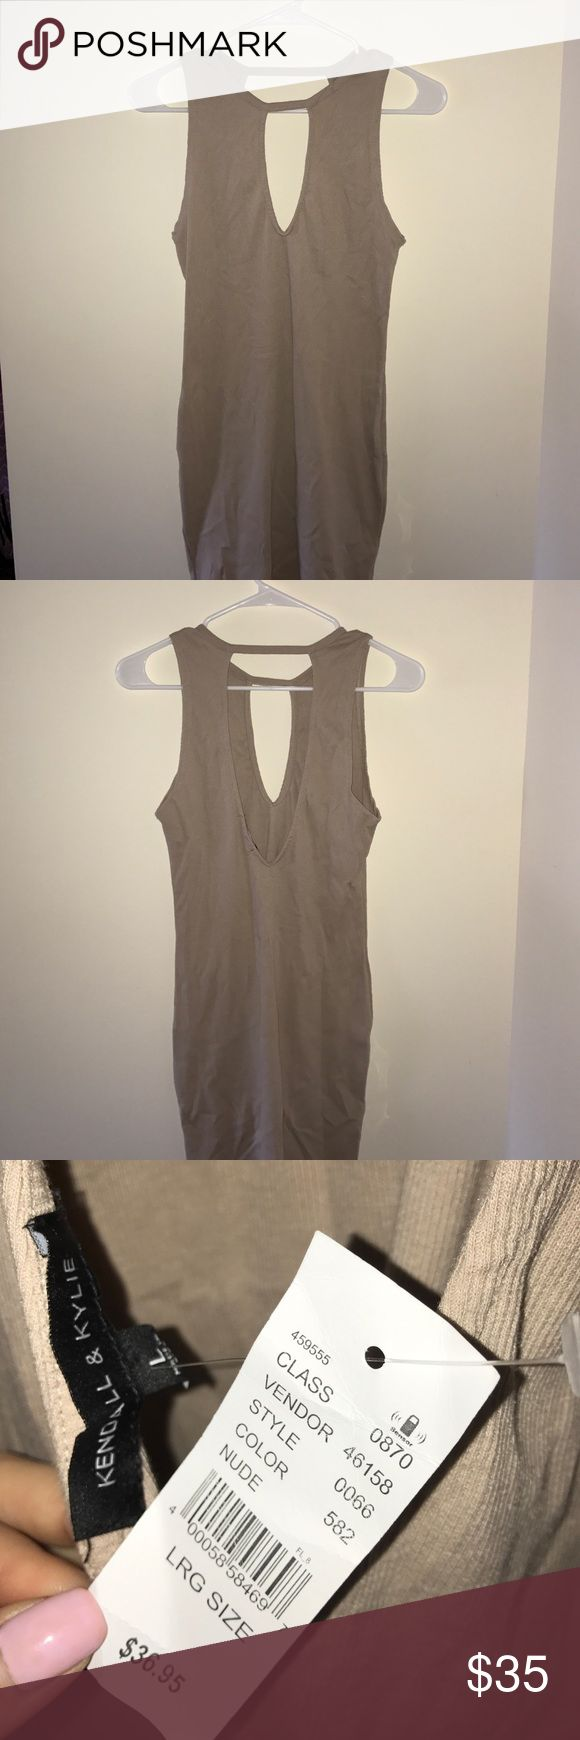 Kendall & Kylie Nude Dress Kendall & Kylie nude dress from PacSun. Wear it with a sticky bra. Worn once! Kendall & Kylie Dresses Backless